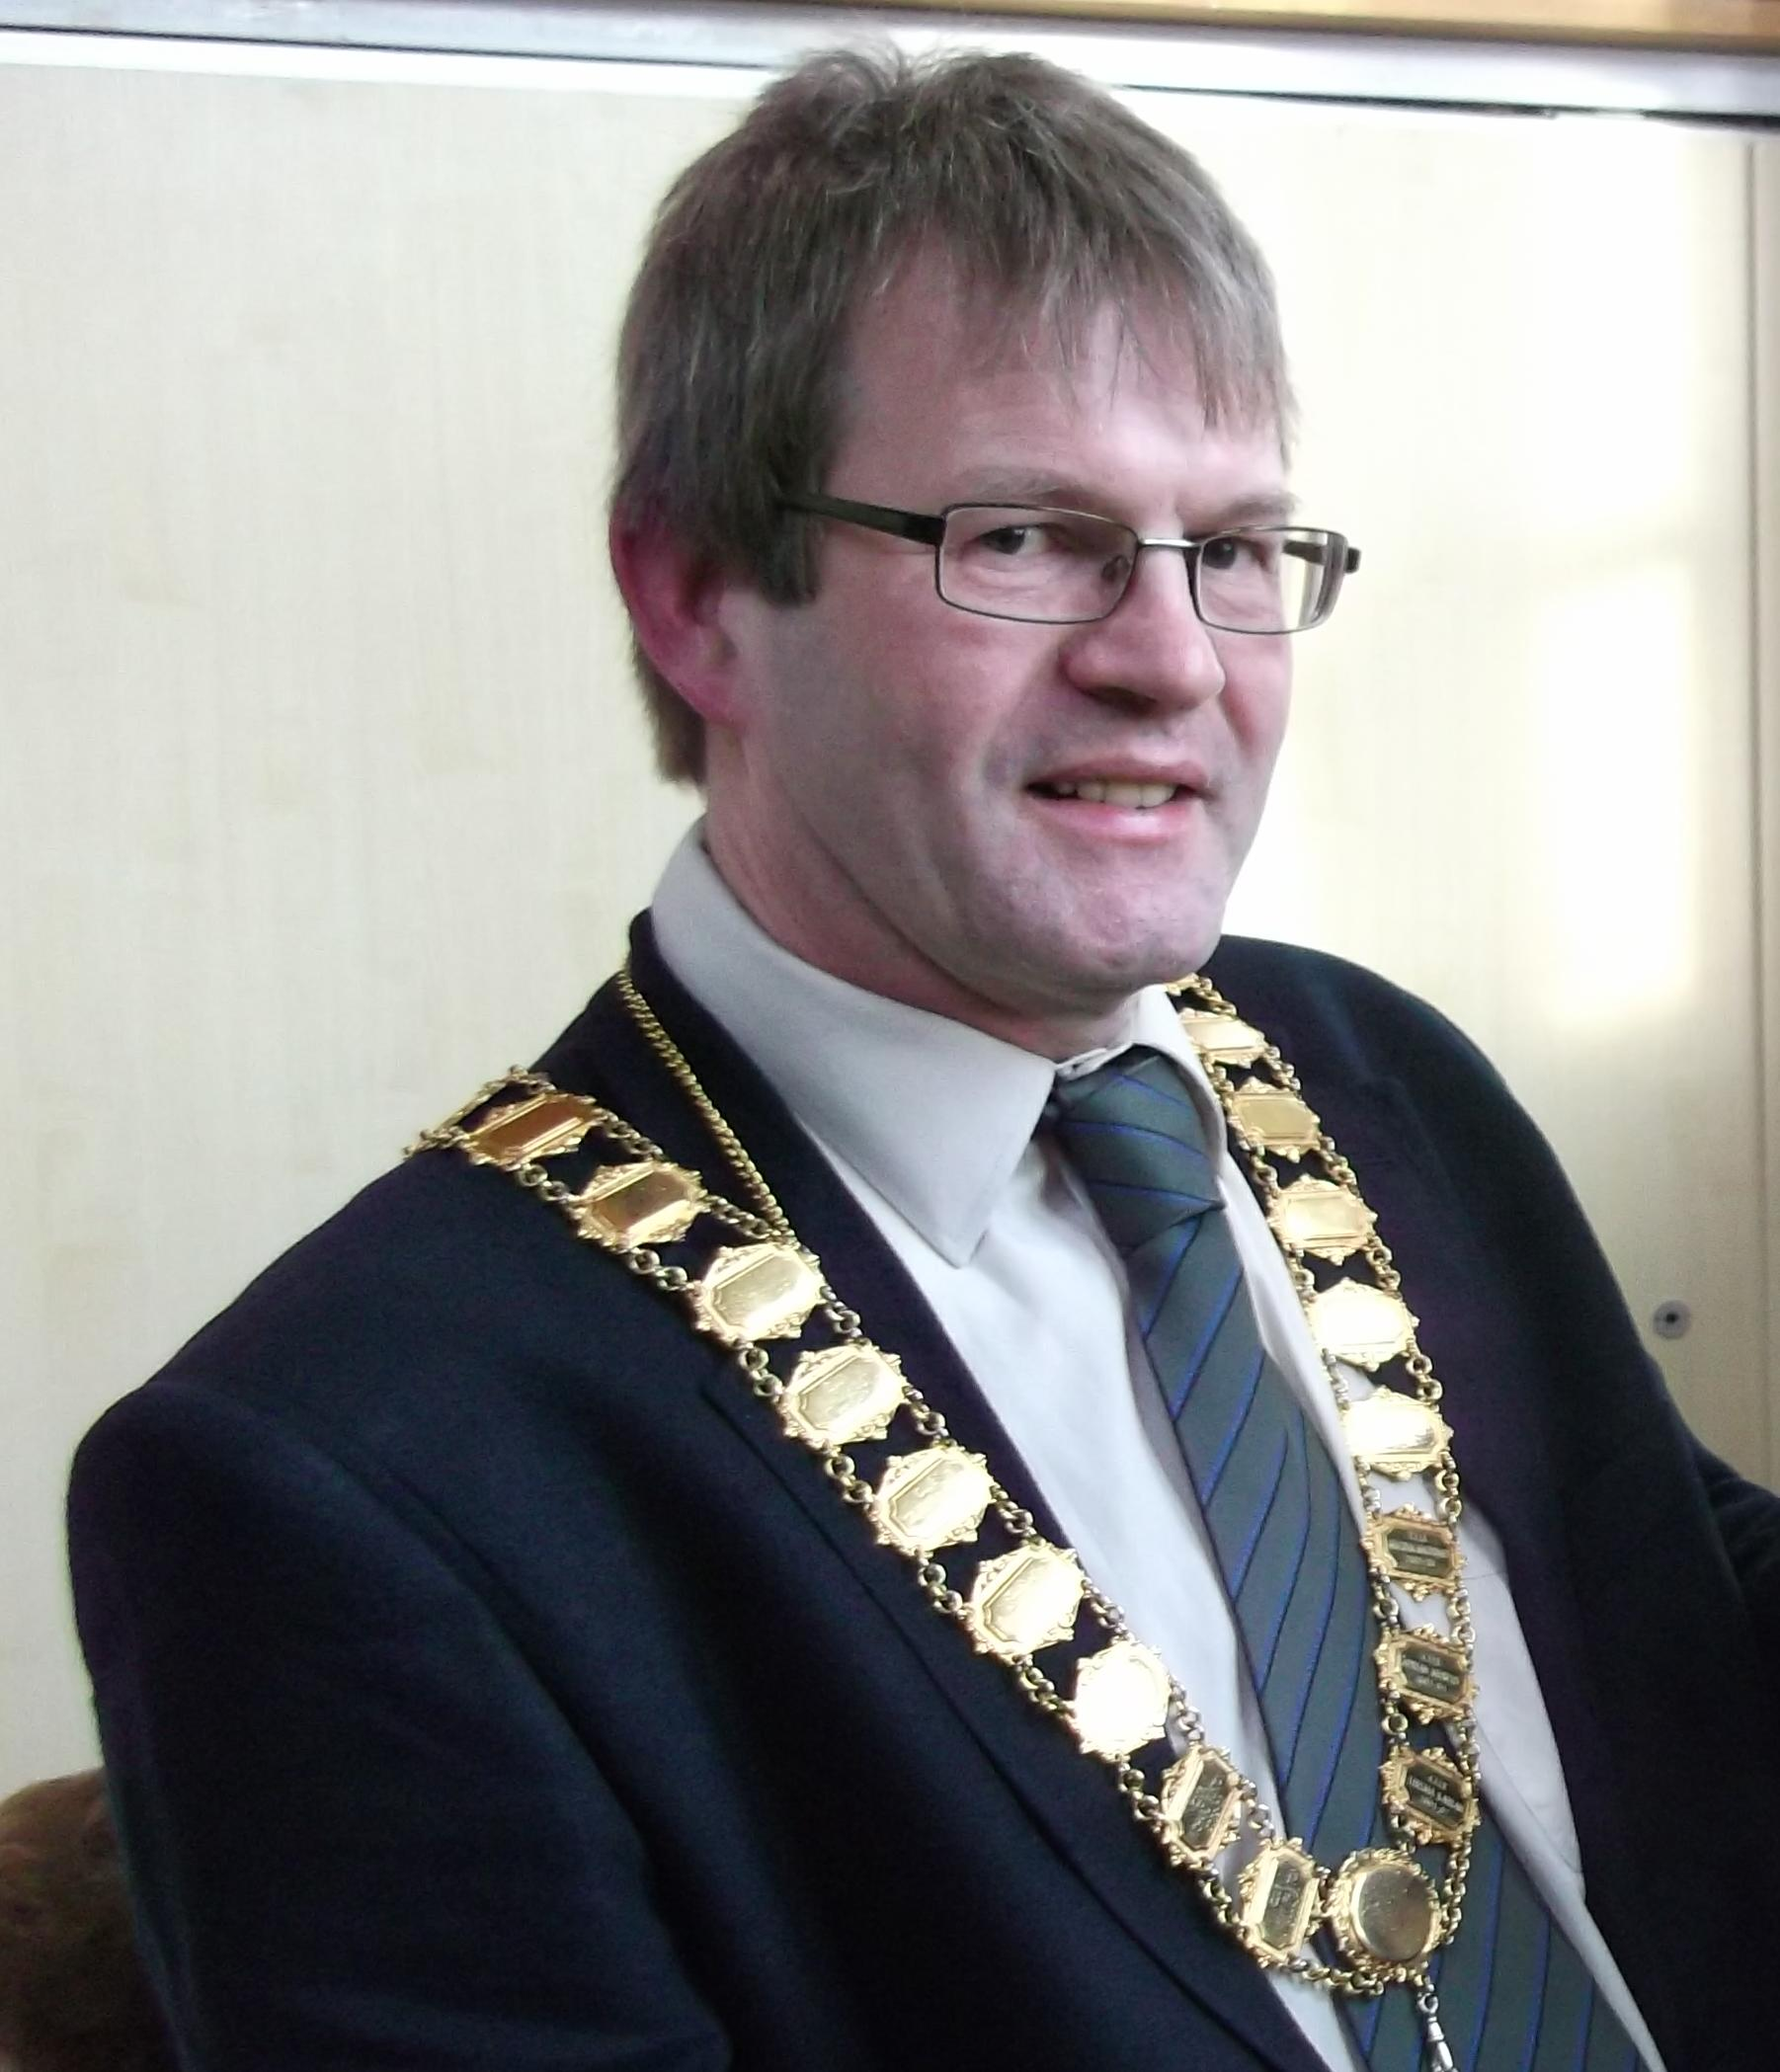 Cllr Richard Burton